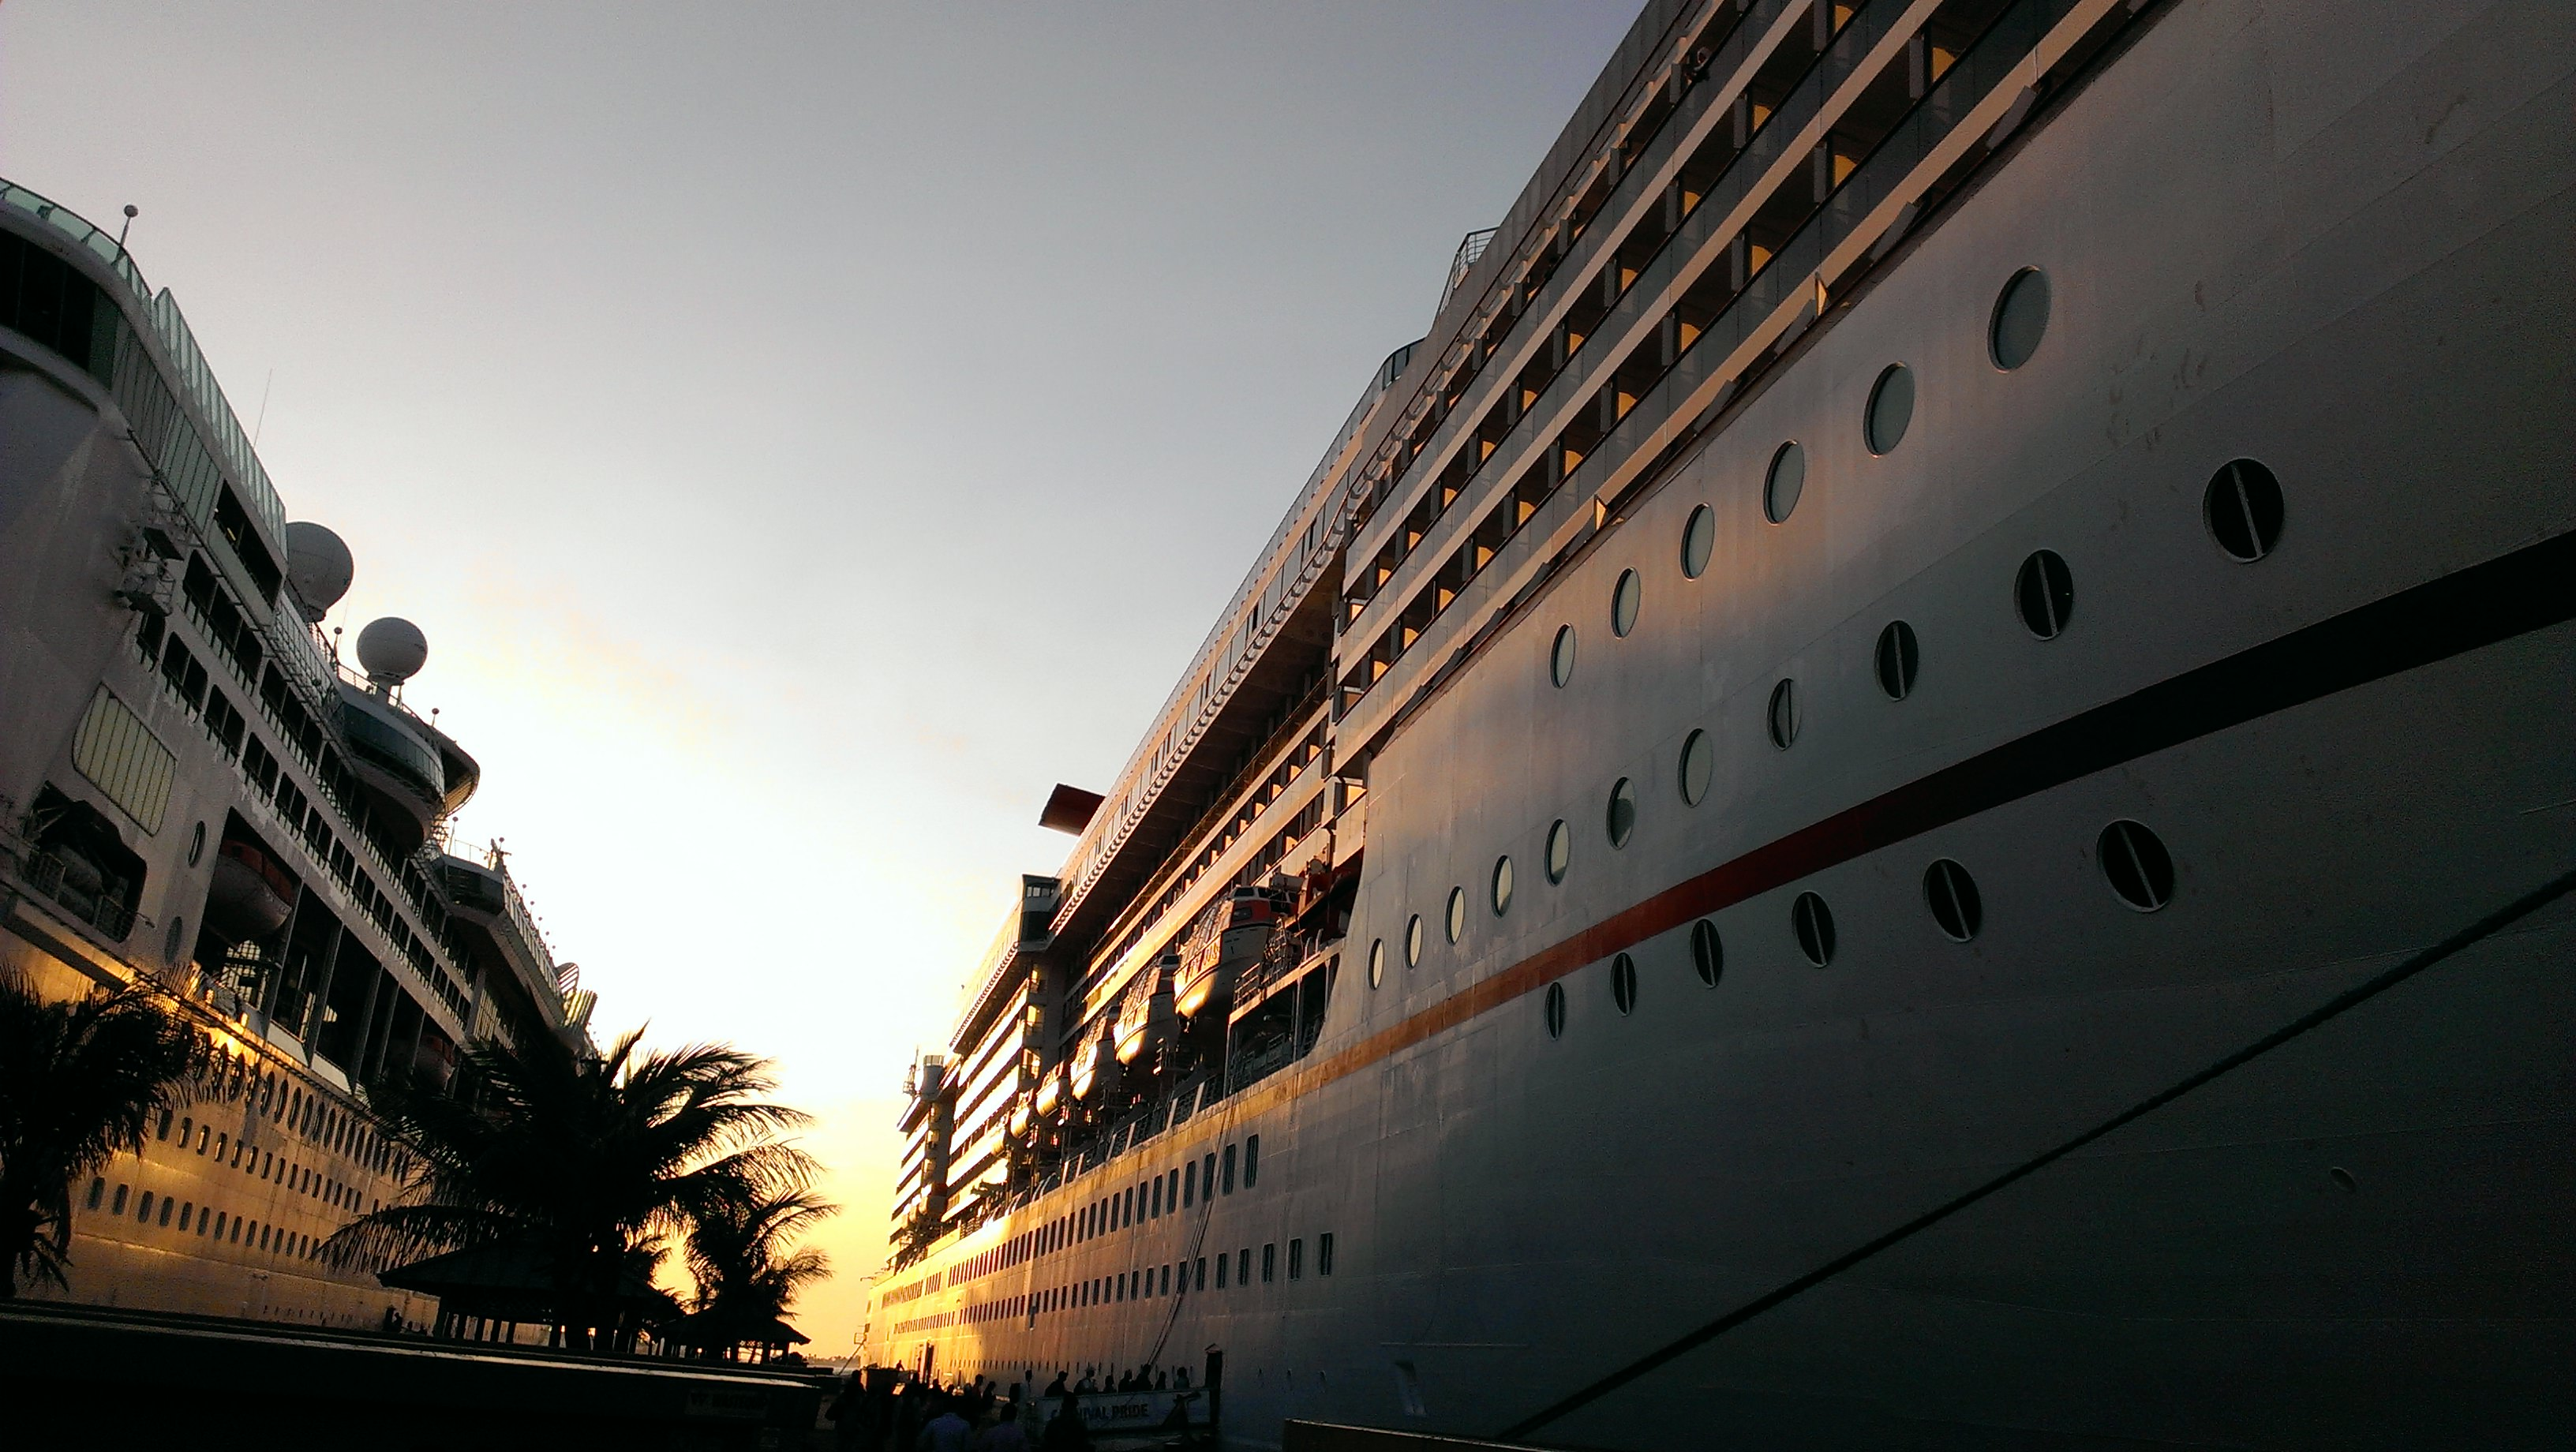 travel packing checklists cruise ship family vacation